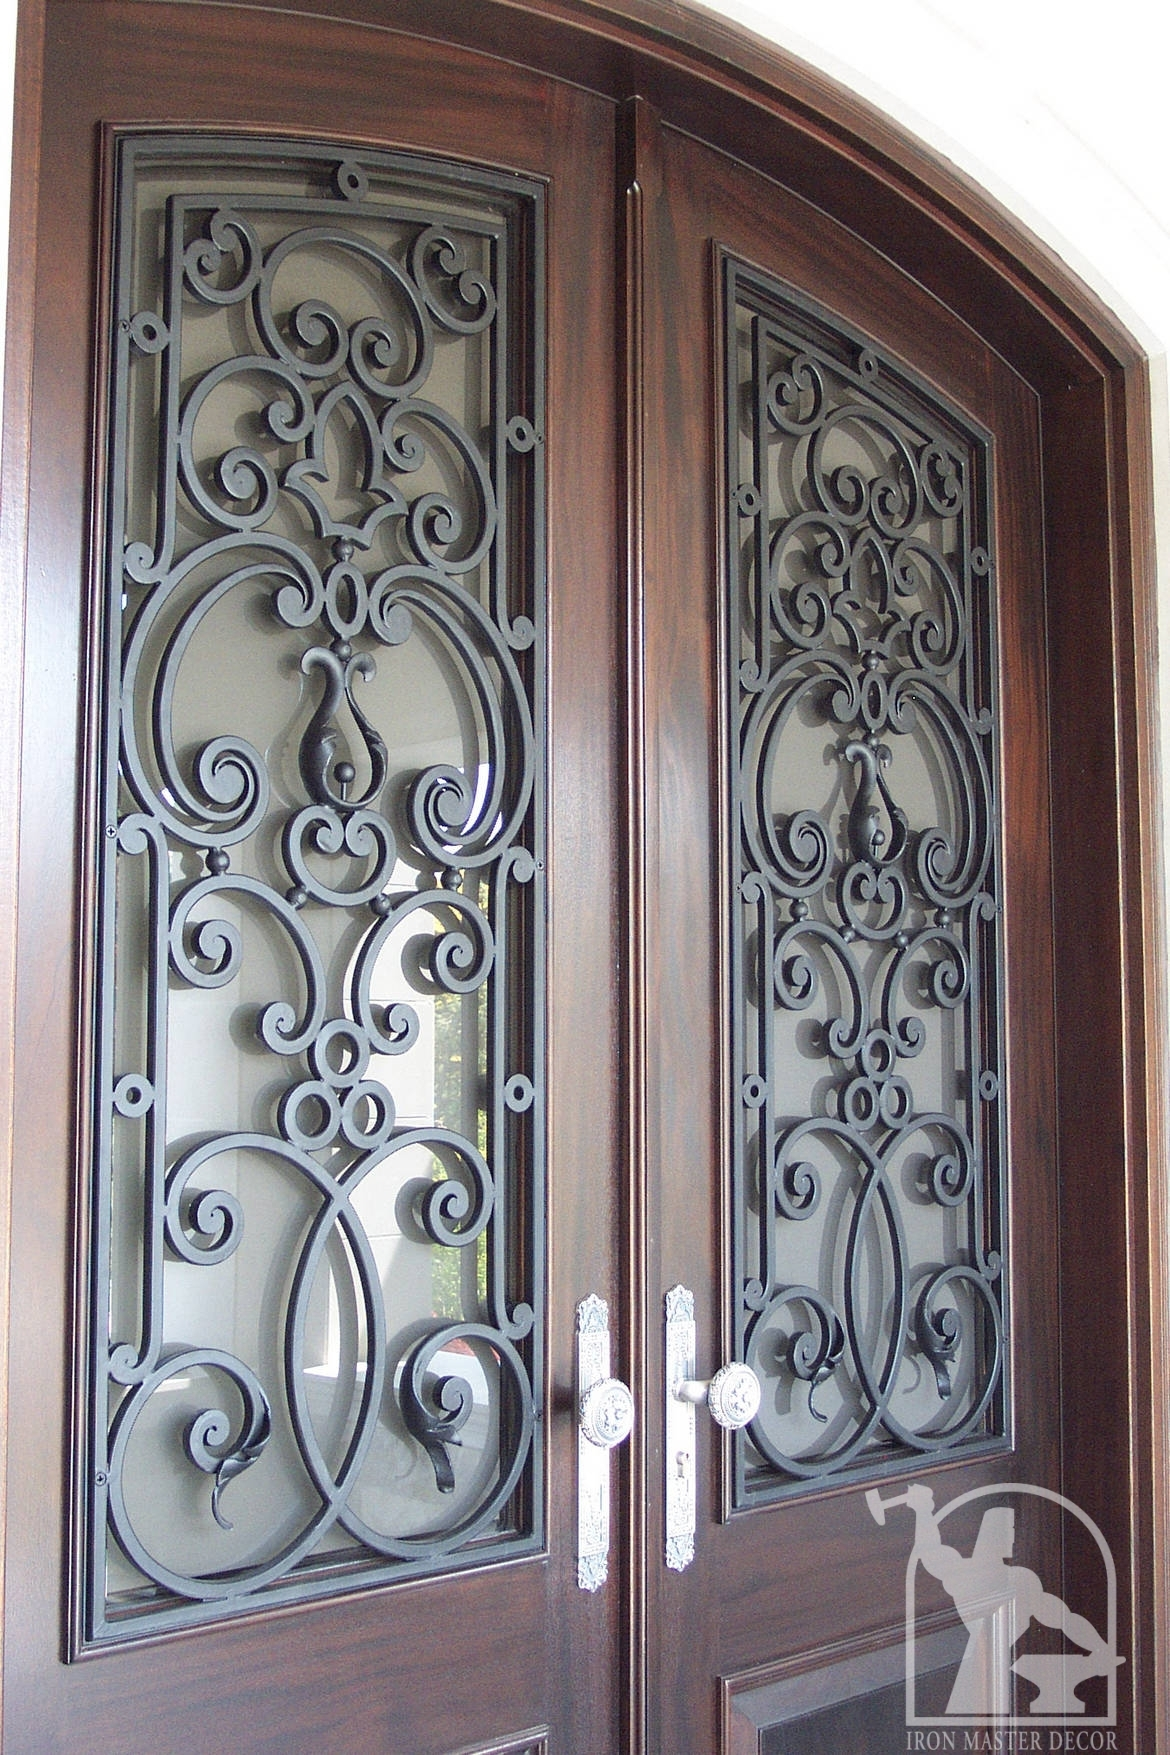 1755 #614641 Wrought Iron Front Door Photo Gallery Iron Master wallpaper Iron Grill Doors 7751170